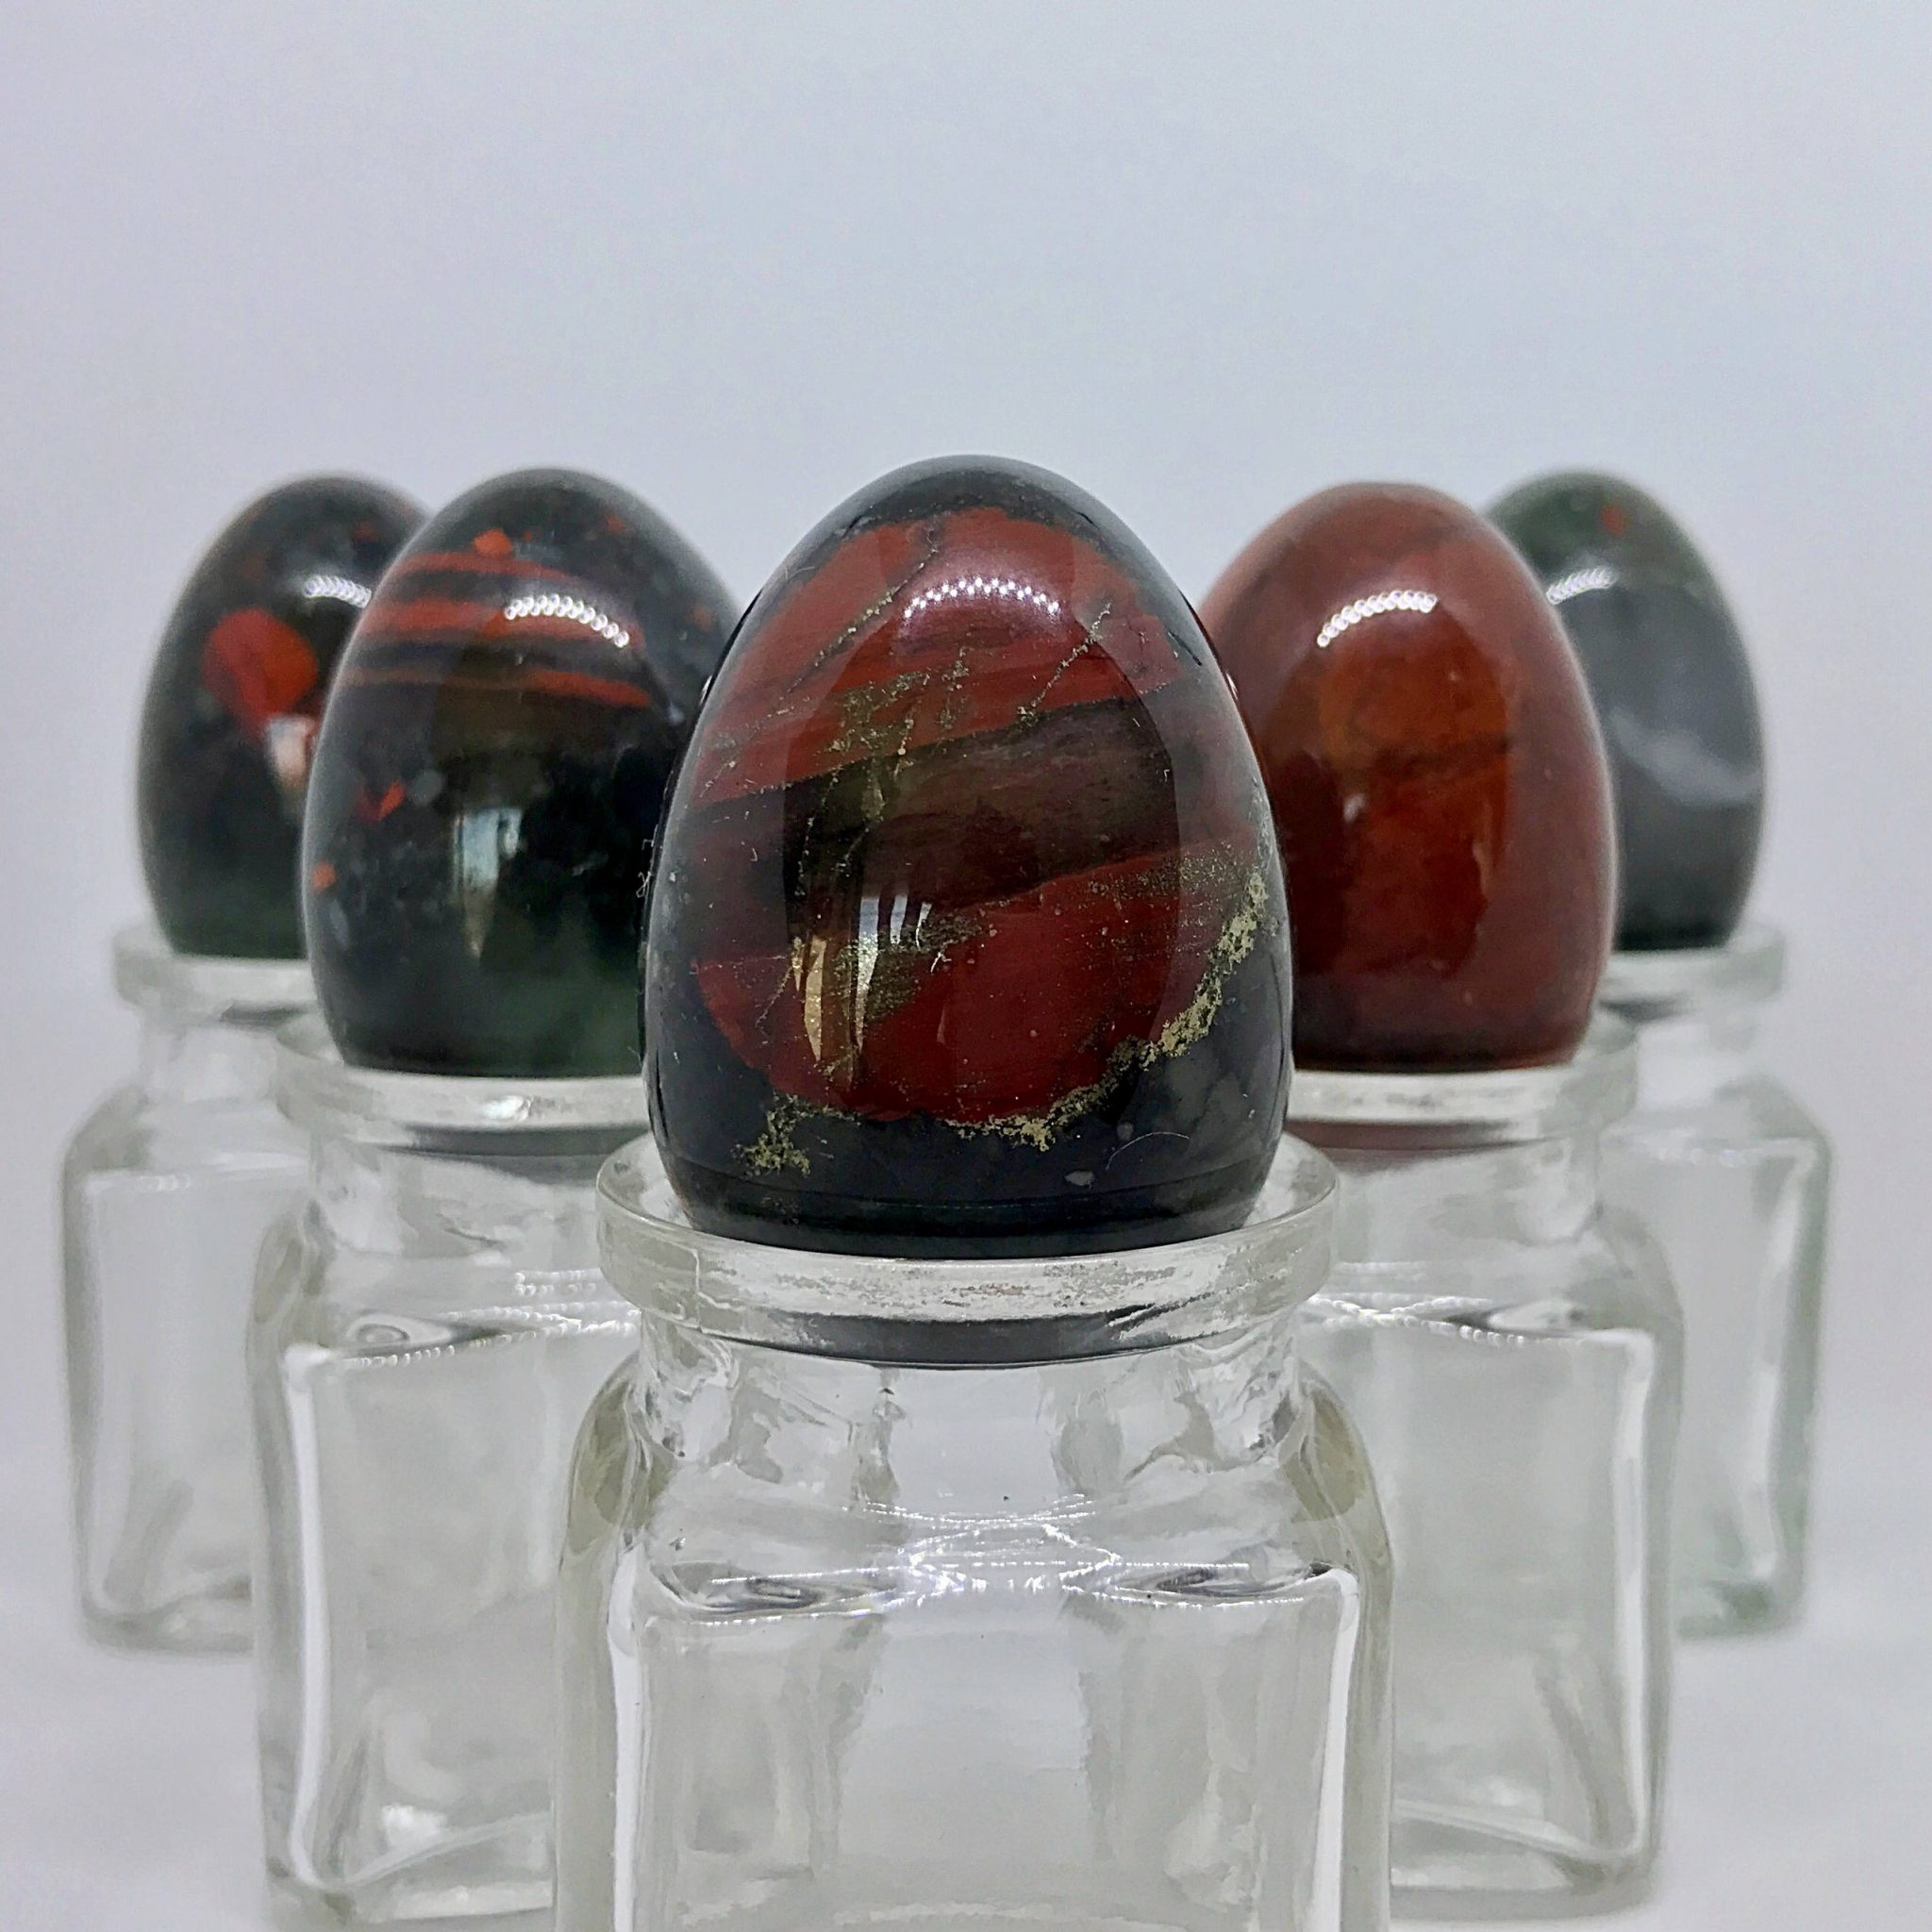 5 Medium Bloodstone Yoni Eggs